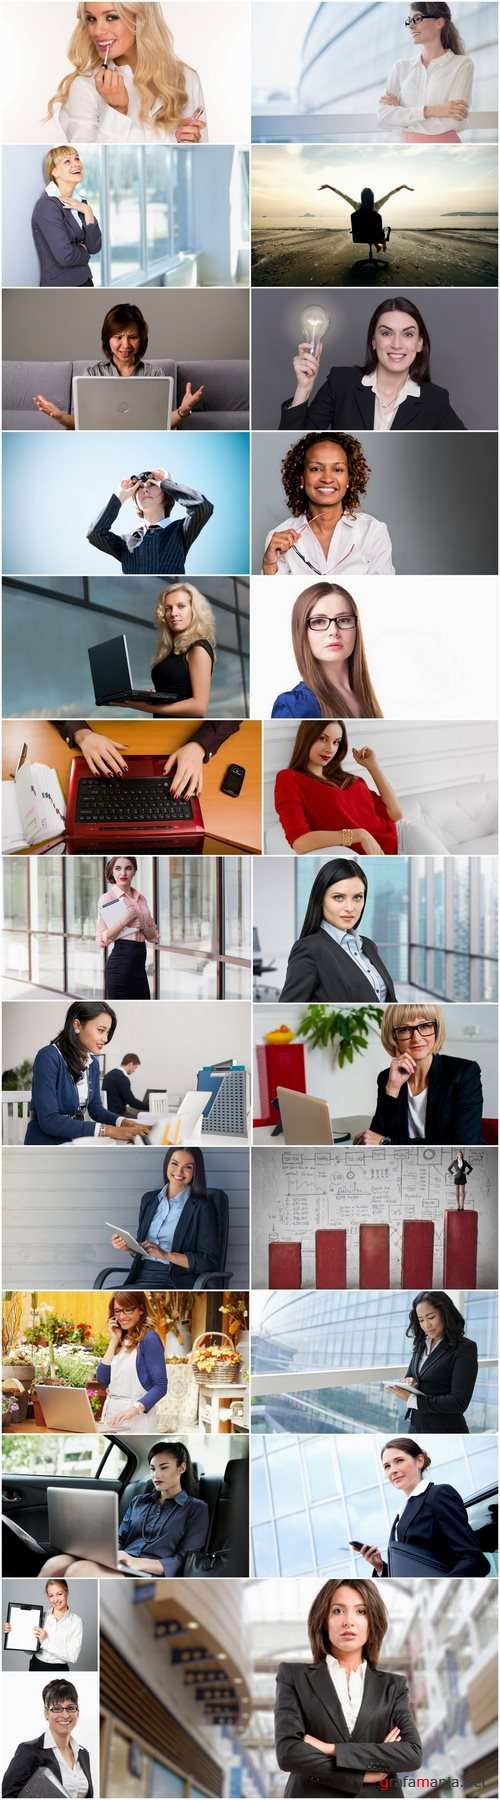 Business woman female girl business suit laptop 2-25 HQ Jpeg